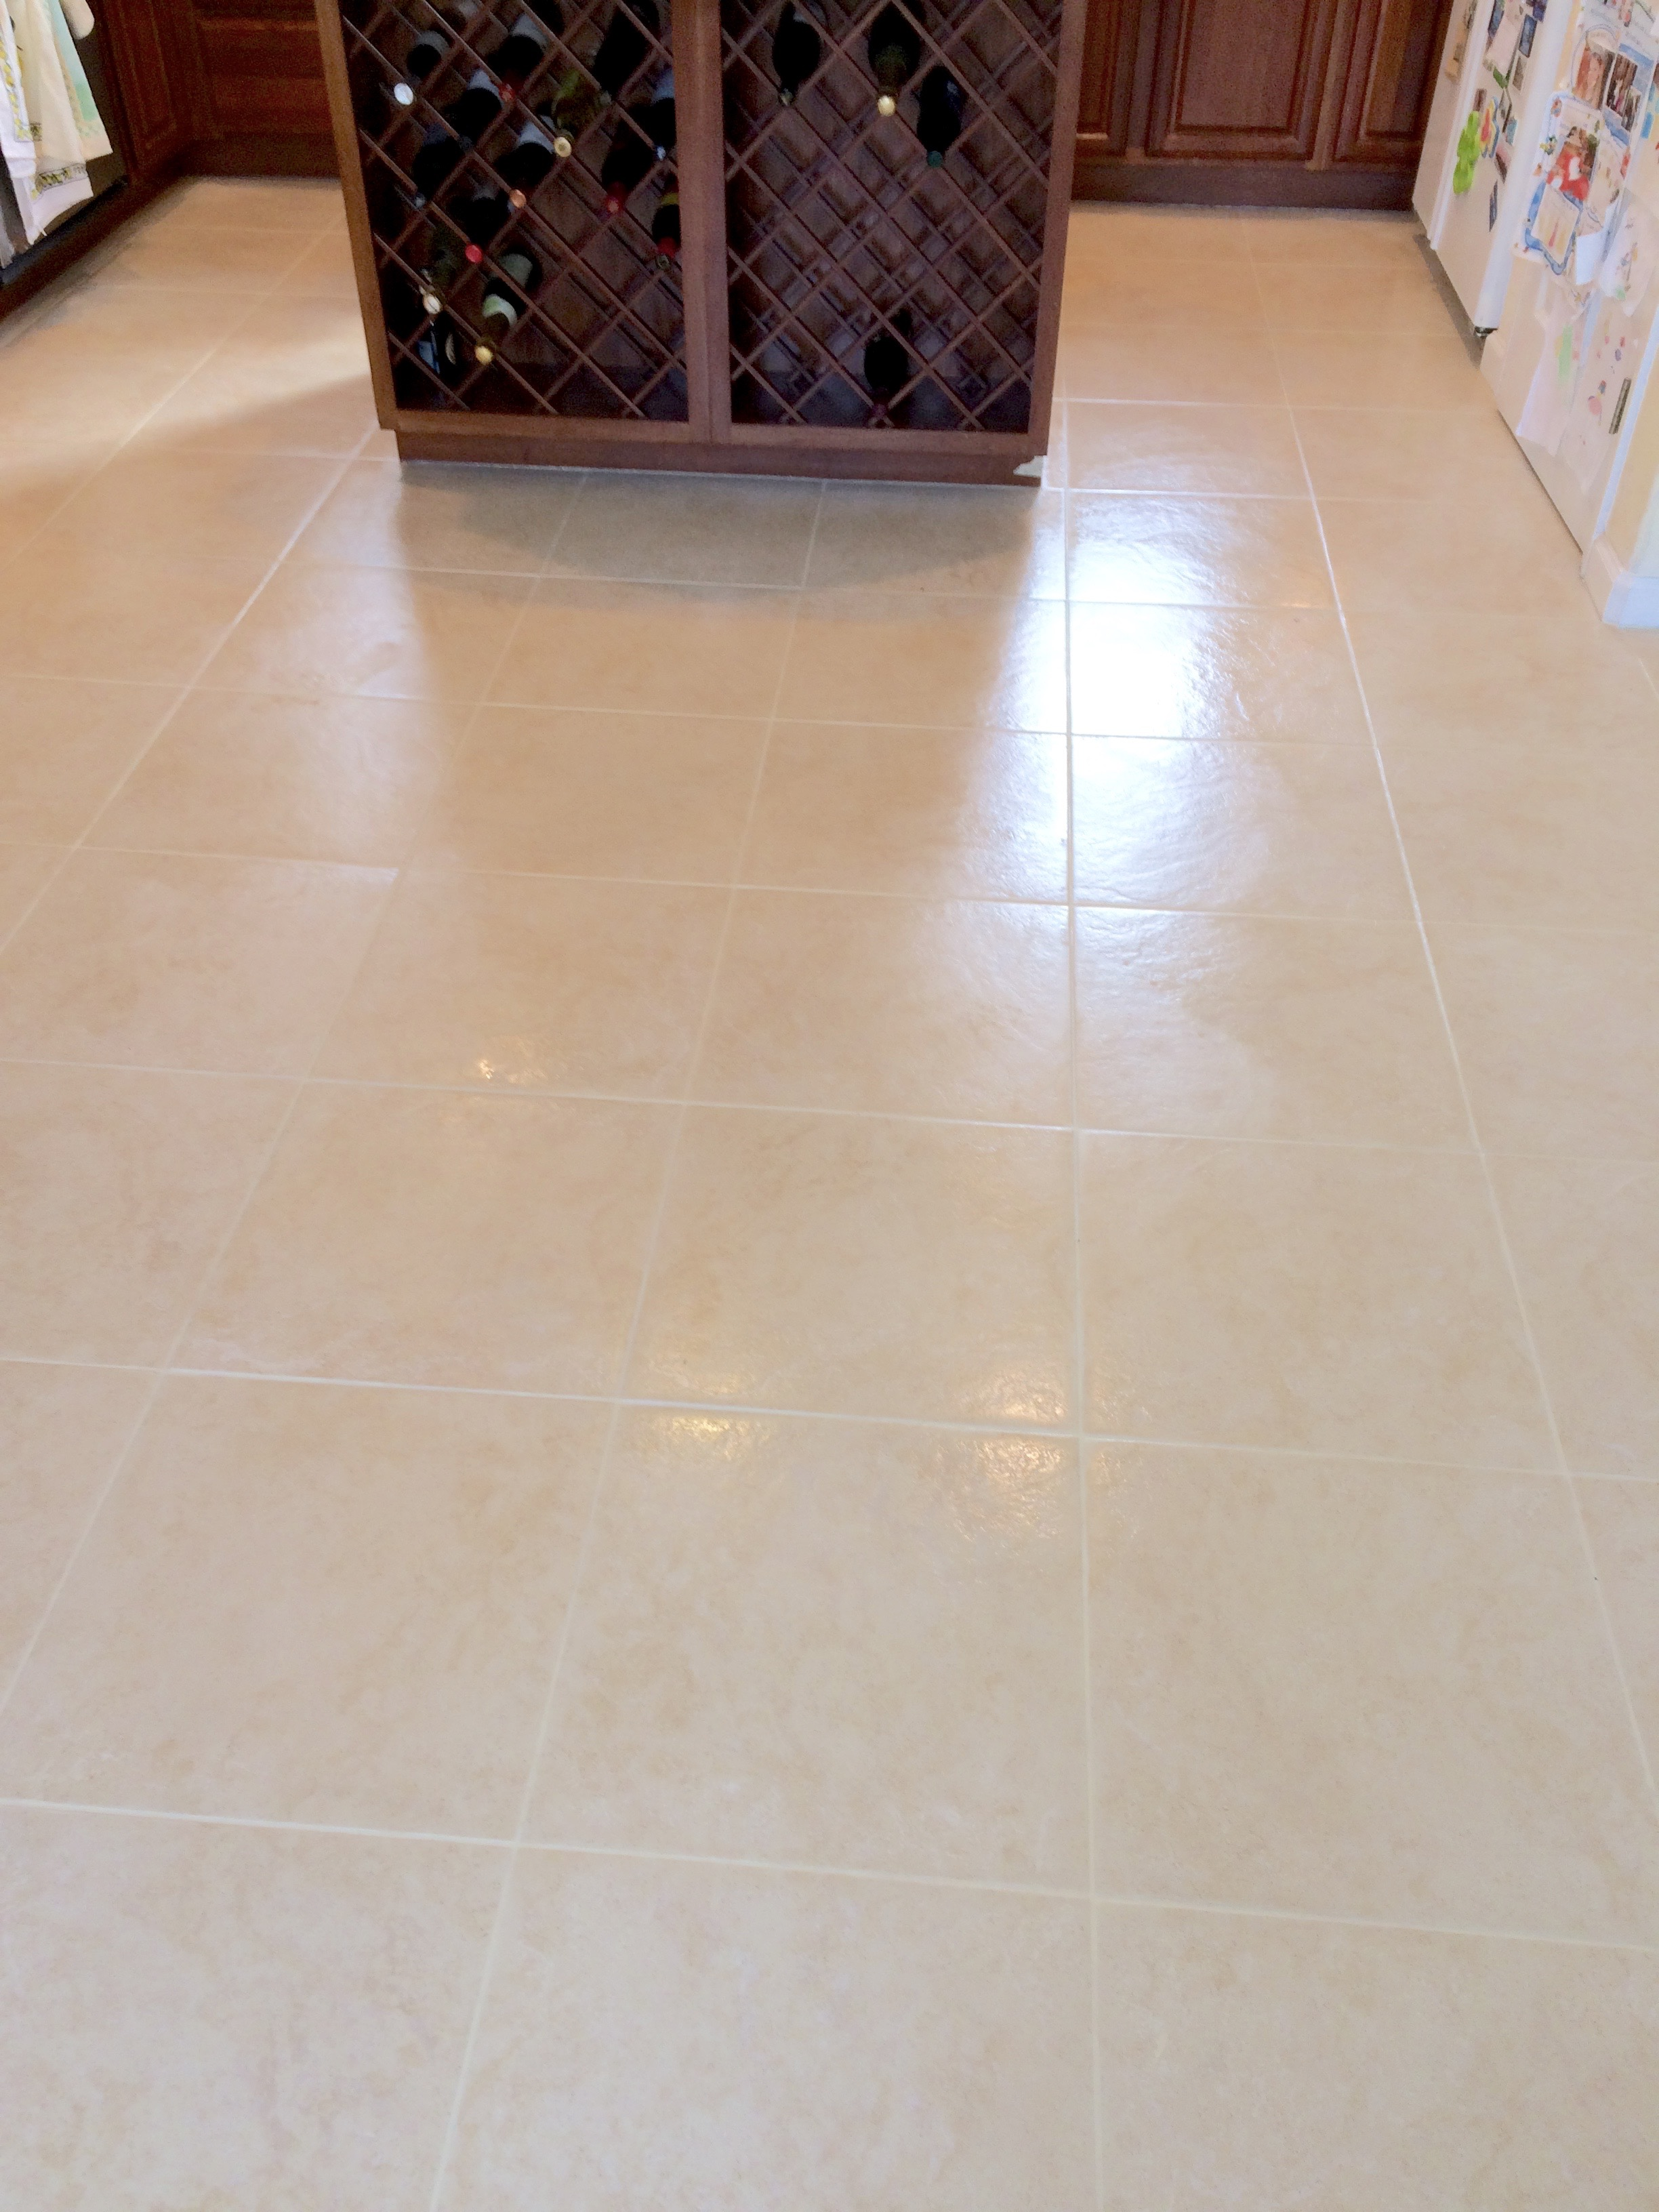 Citrus Plus Tile and Grout Cleaning - Before and After ...